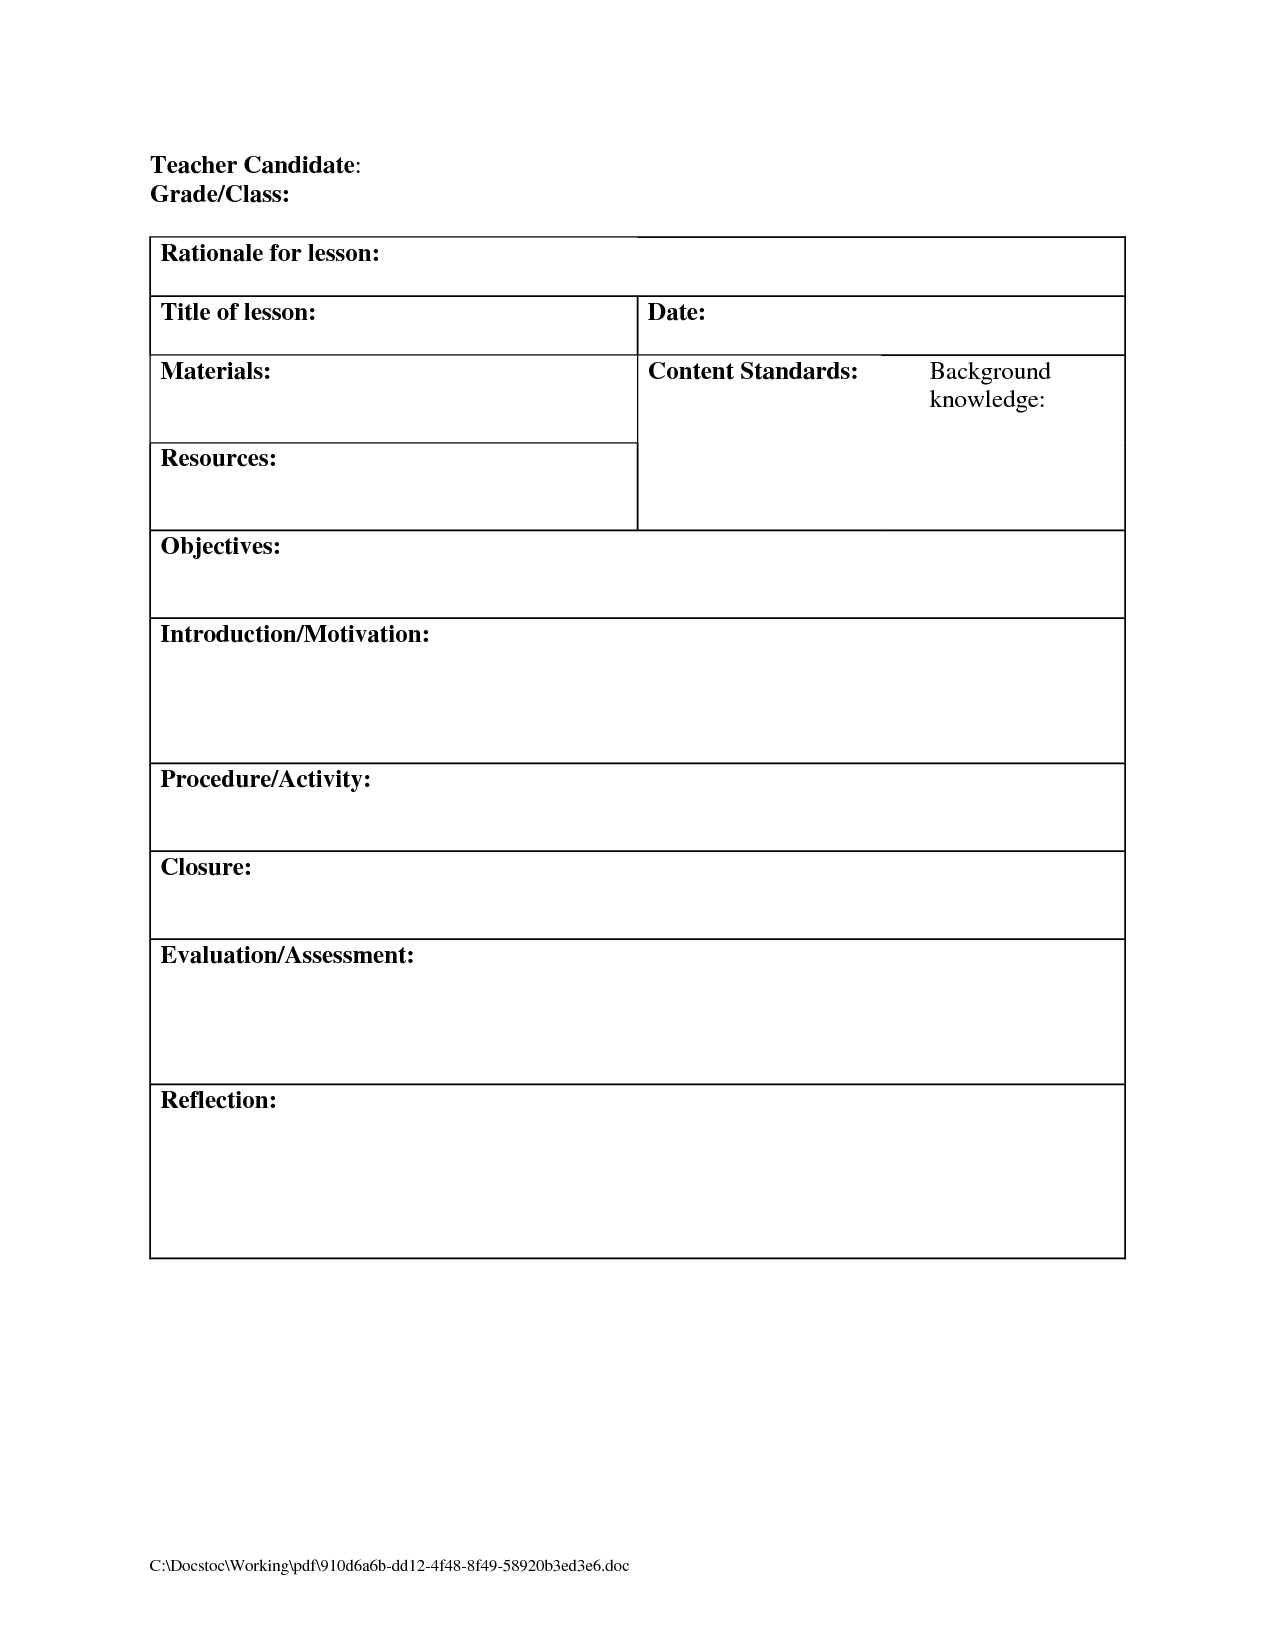 Daily Lesson Plan Template Blank Lesson Plan Template For New - Free Printable Daily Lesson Plan Template